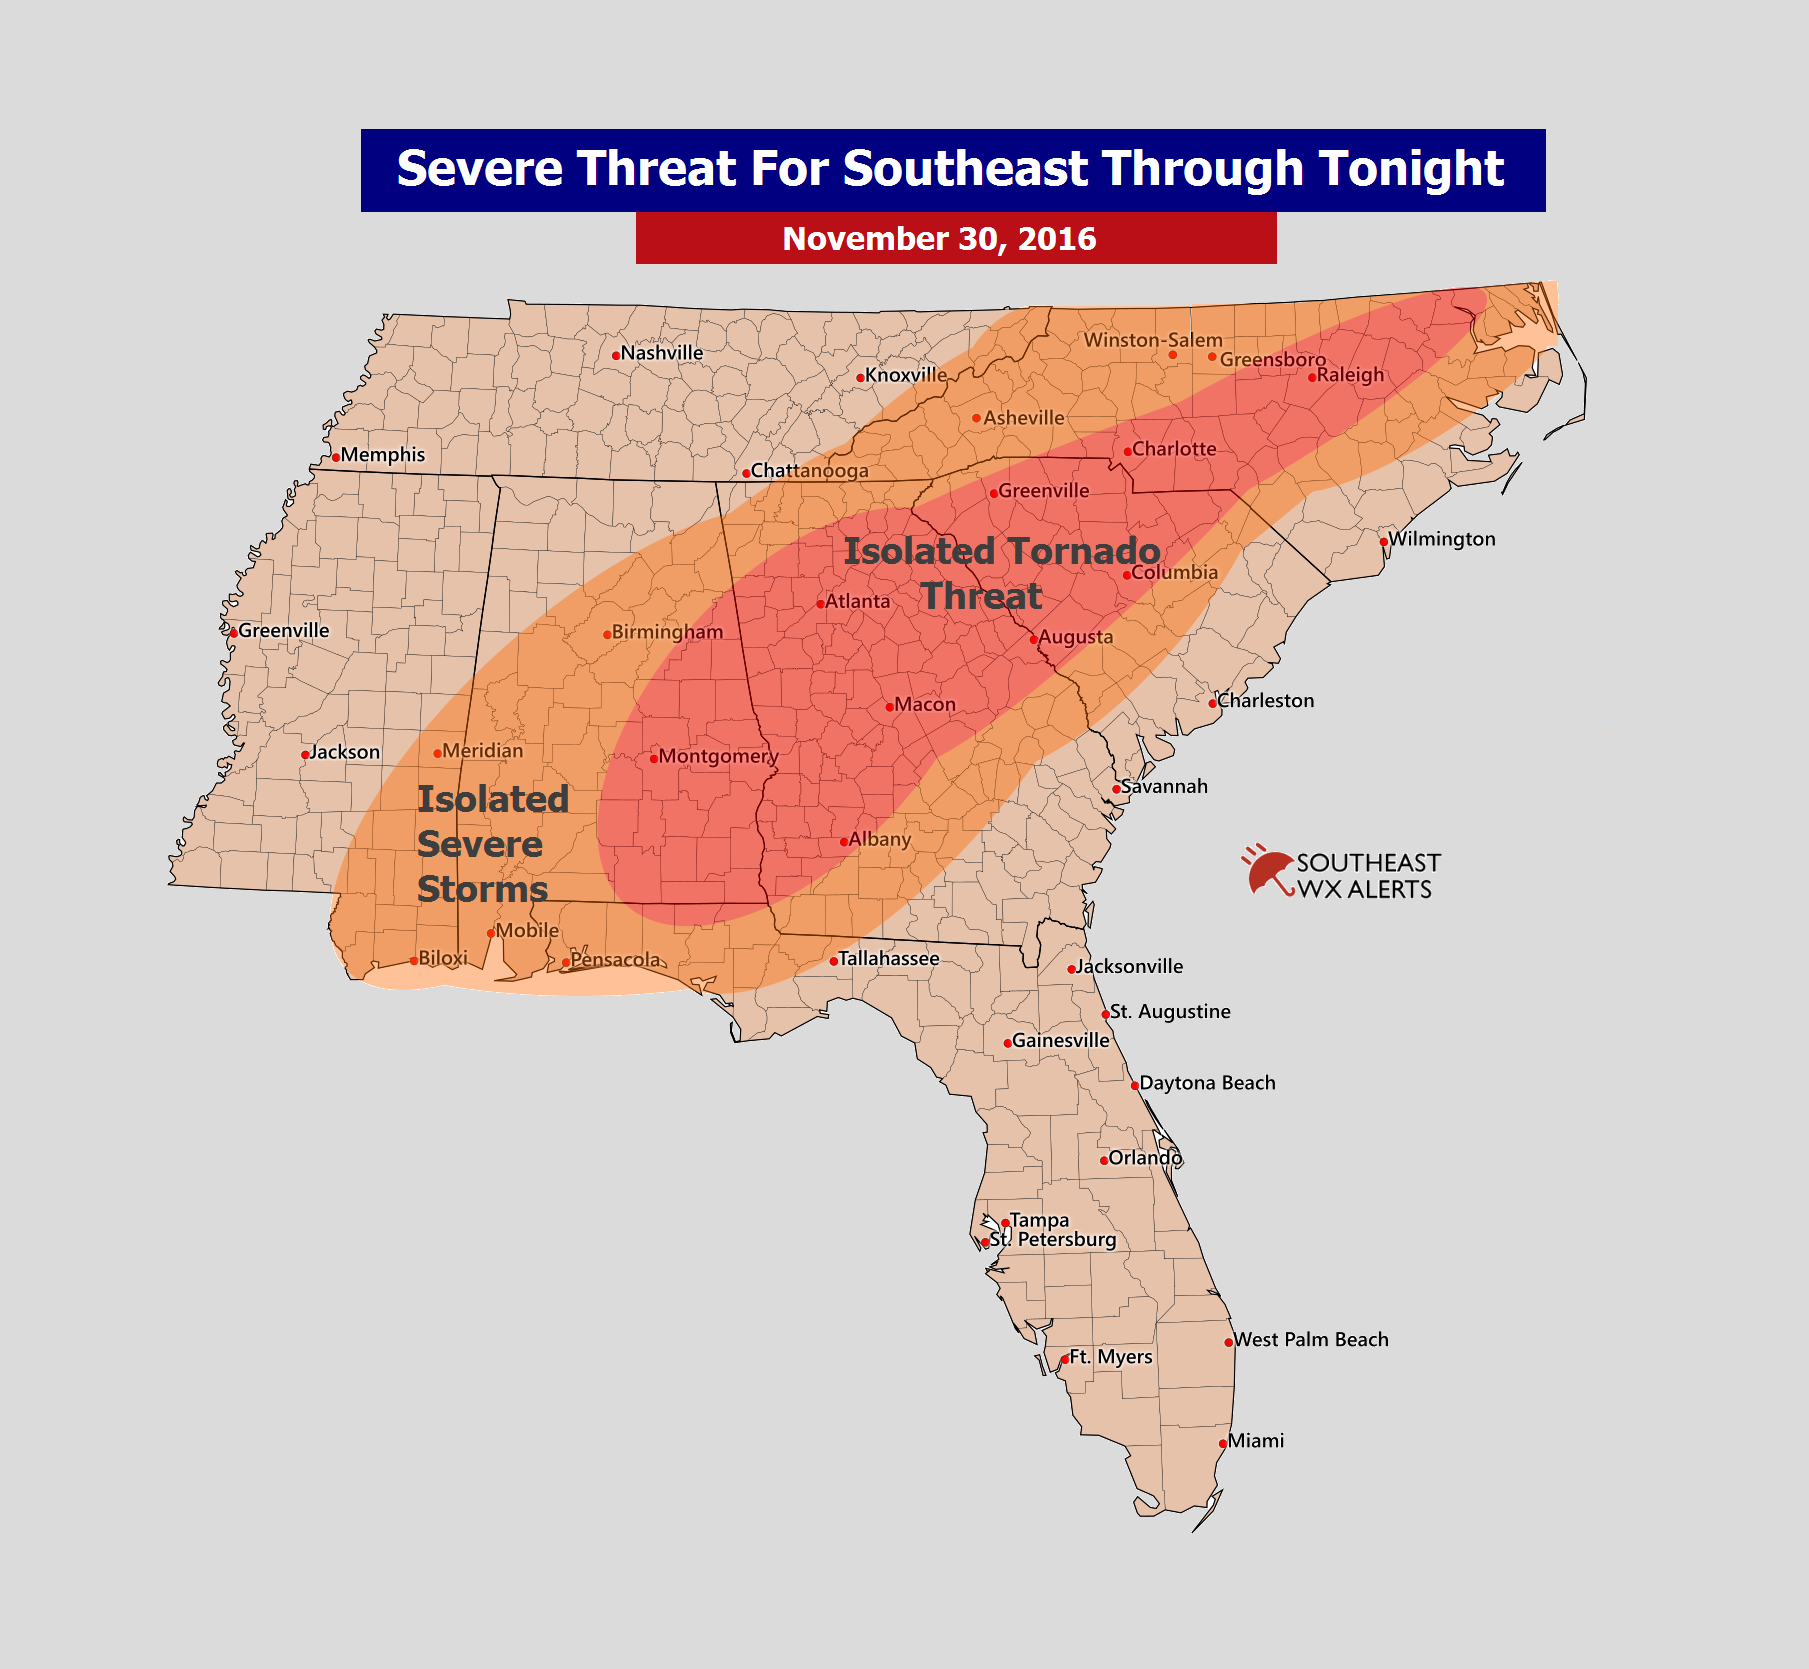 Southeast Weather Alerts Example Maps | SouthEastWxAlerts